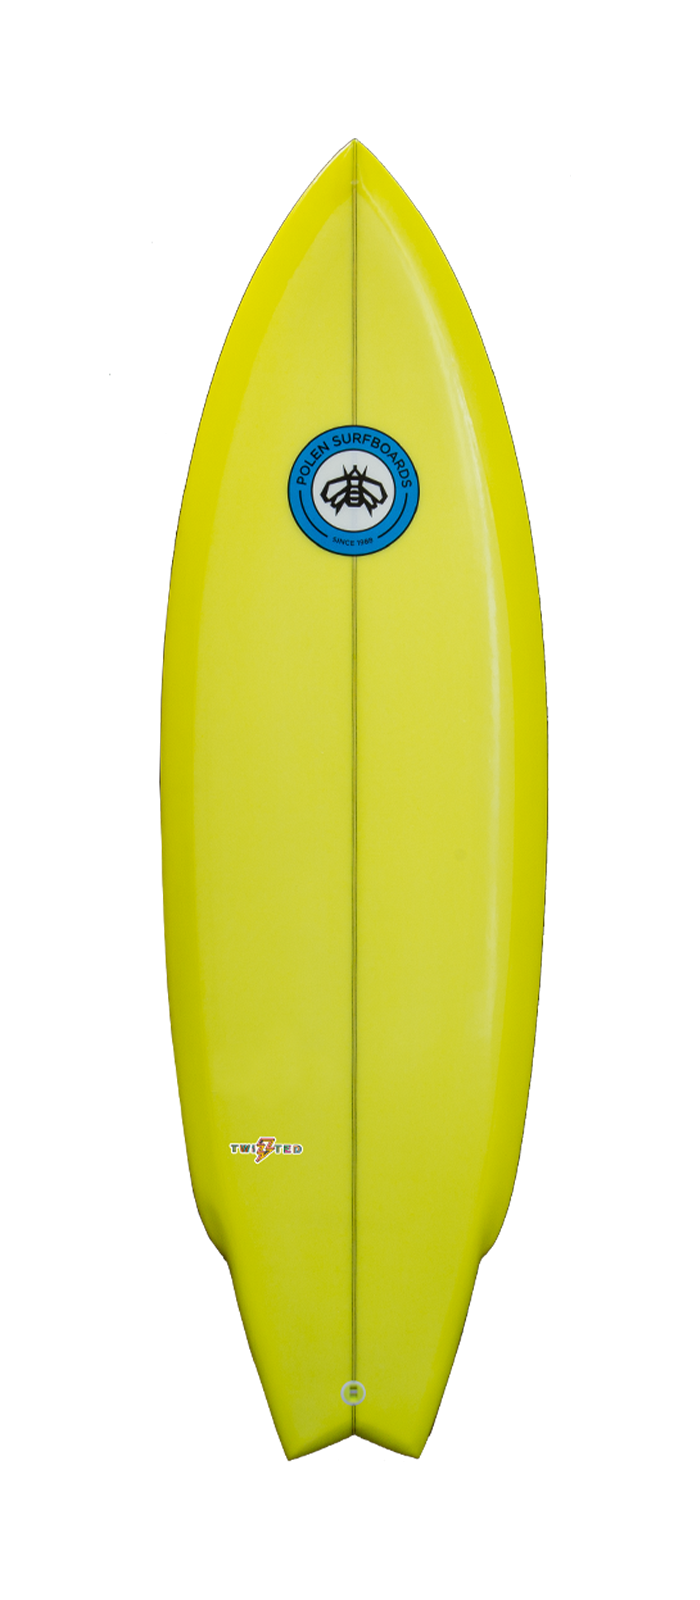 TWISTED surfboard model